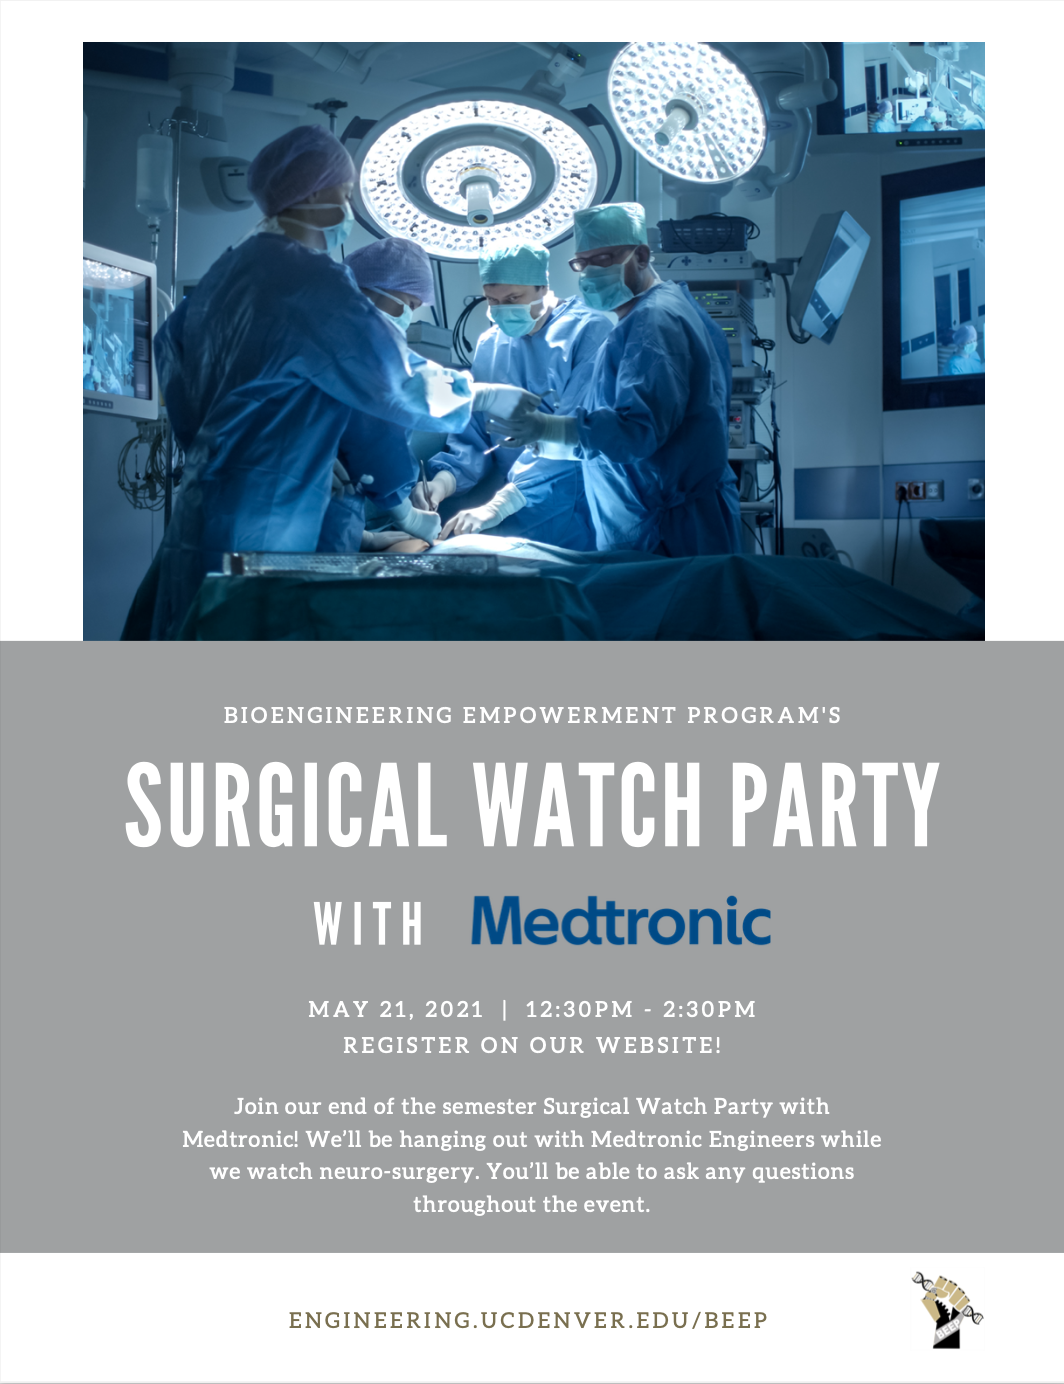 The flyer for the upcoming Surgery Watch Party with Medtronic BEEP event